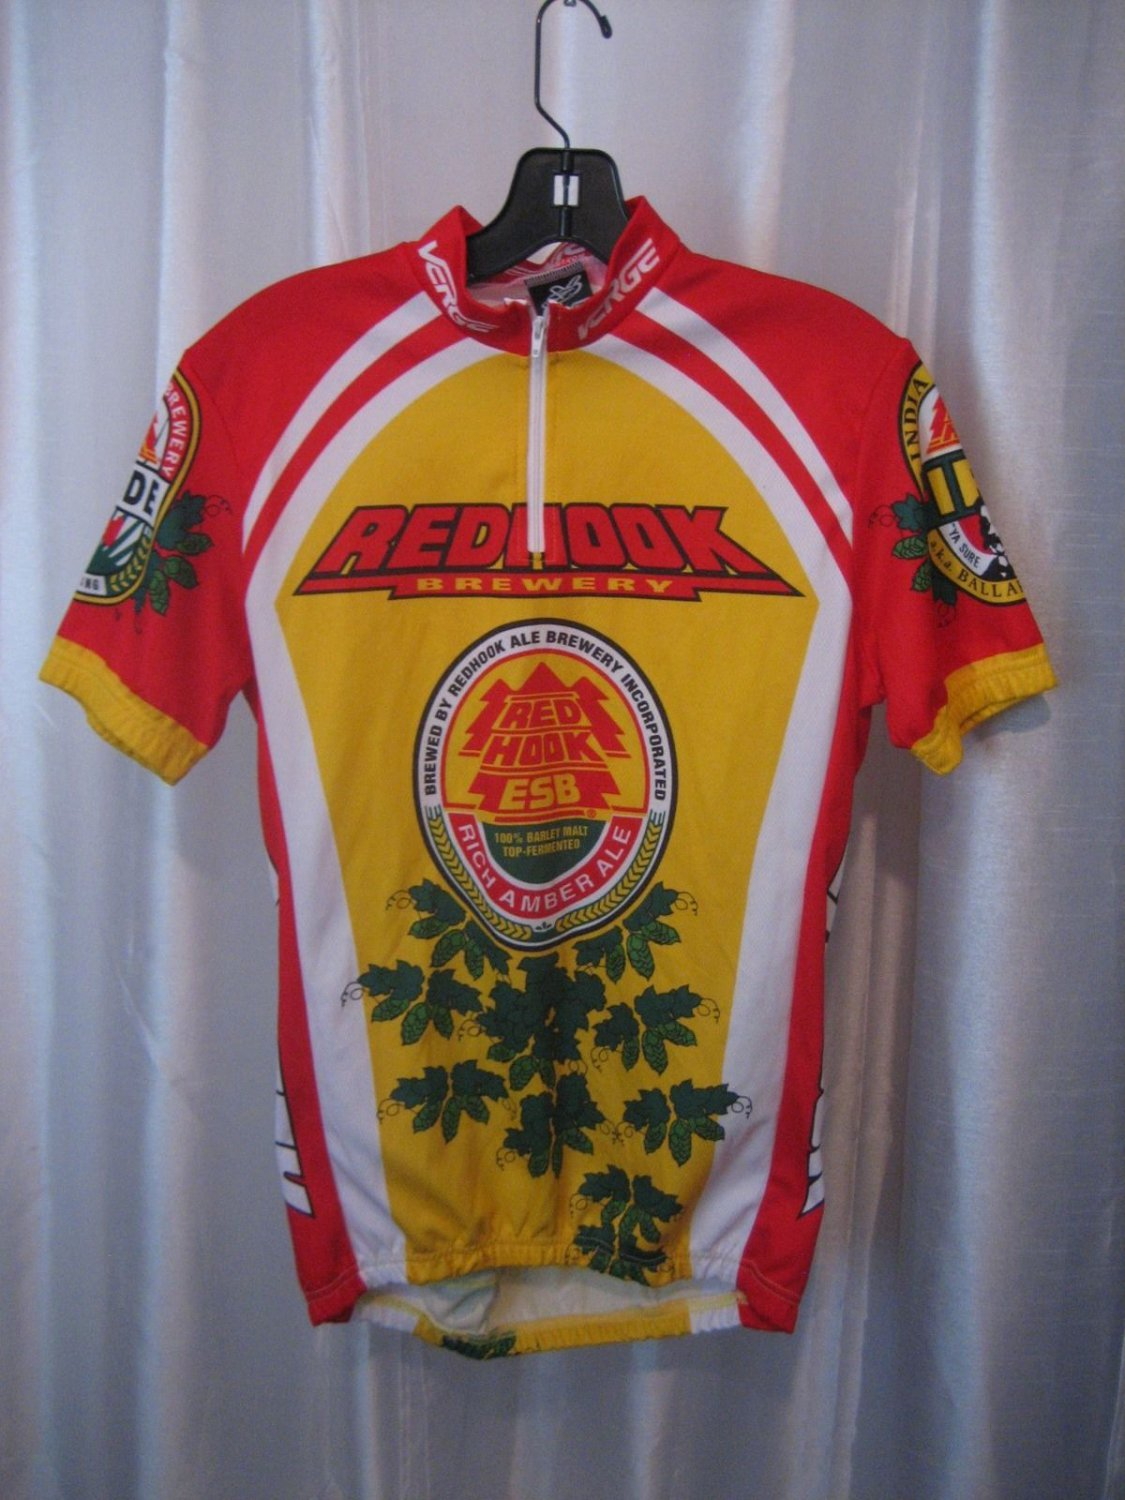 Verge Feel the Urge Men's Red Hook Brewery Bike/Cycling Jersey Sz S Pre-Owned